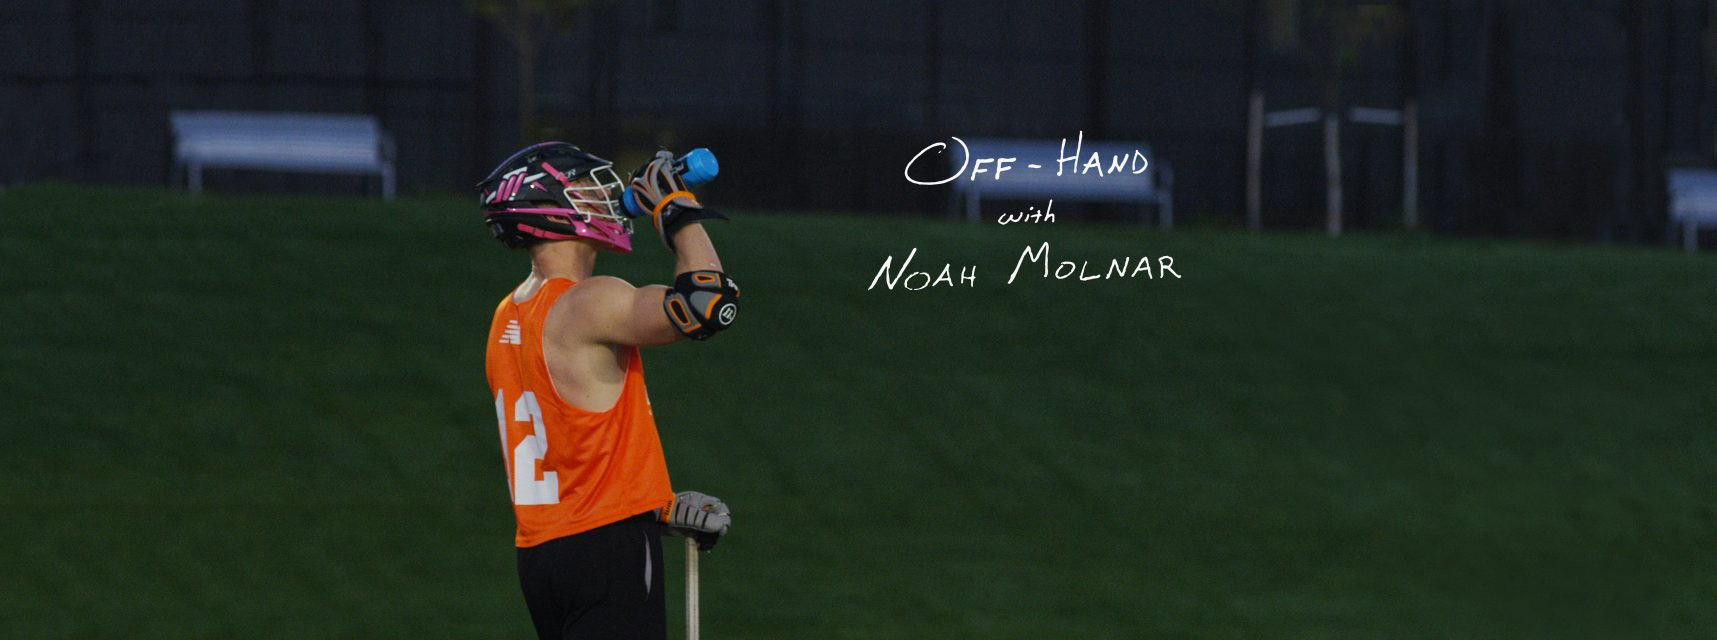 Off-Hand with StringKing Pro Noah Molnar Denver Outlaws Major League Lacrosse